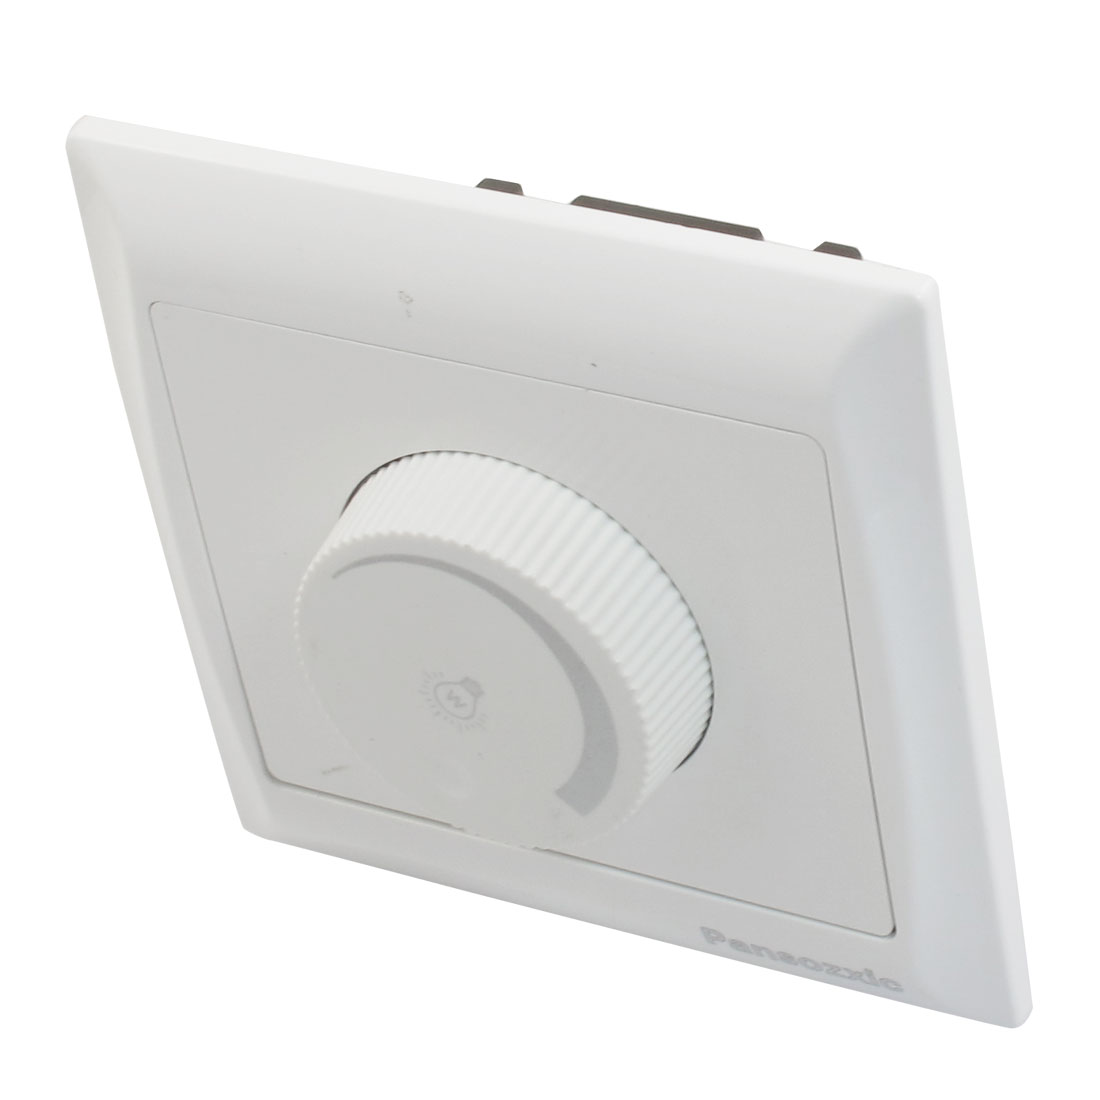 AC 150-250V White Household Office Lamp Light Control Switch Wall Plate